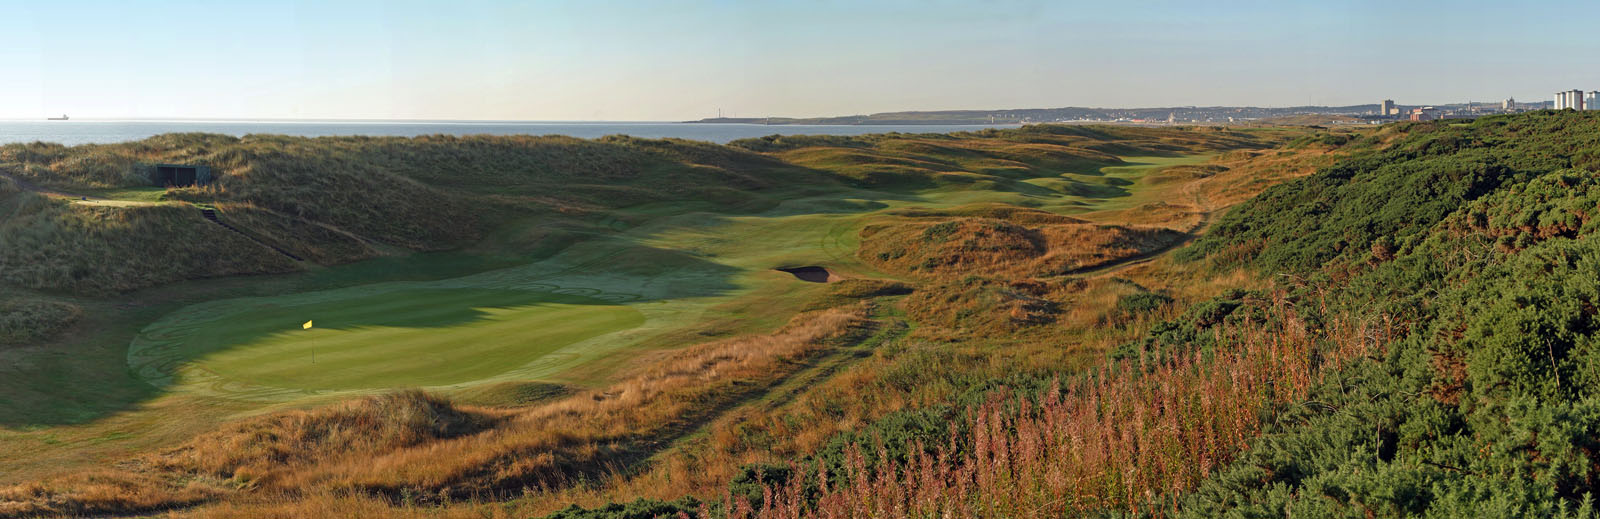 RYLABDN002 : Royal Aberdeen Golf Course, Aberdeen